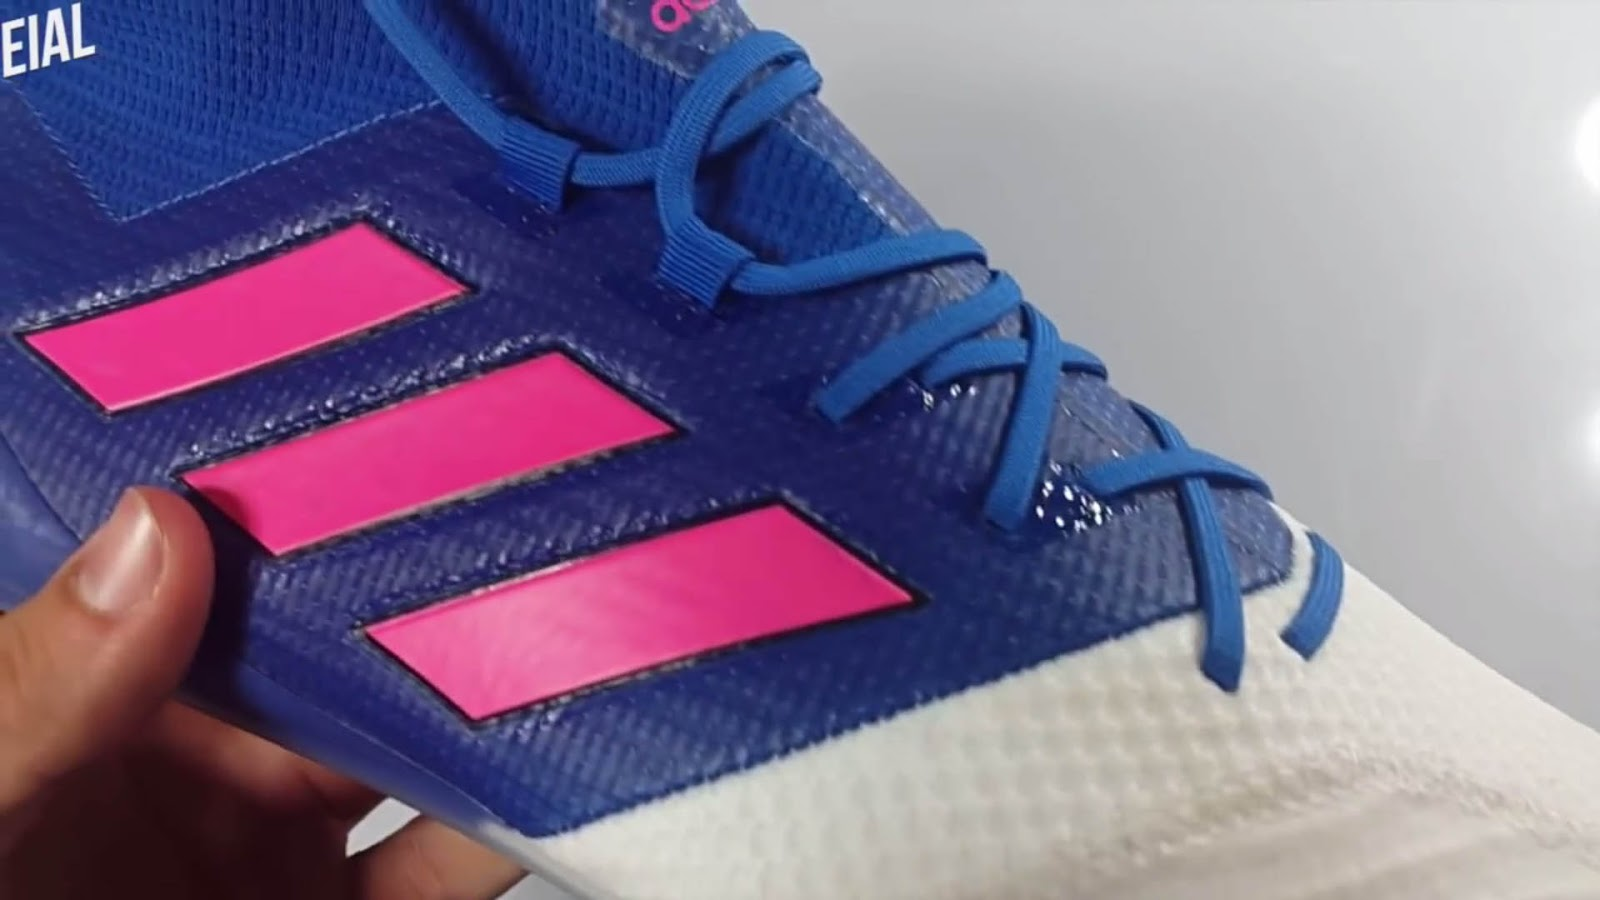 blue-white-pink-next-gen-adidas-ace-17 (6)